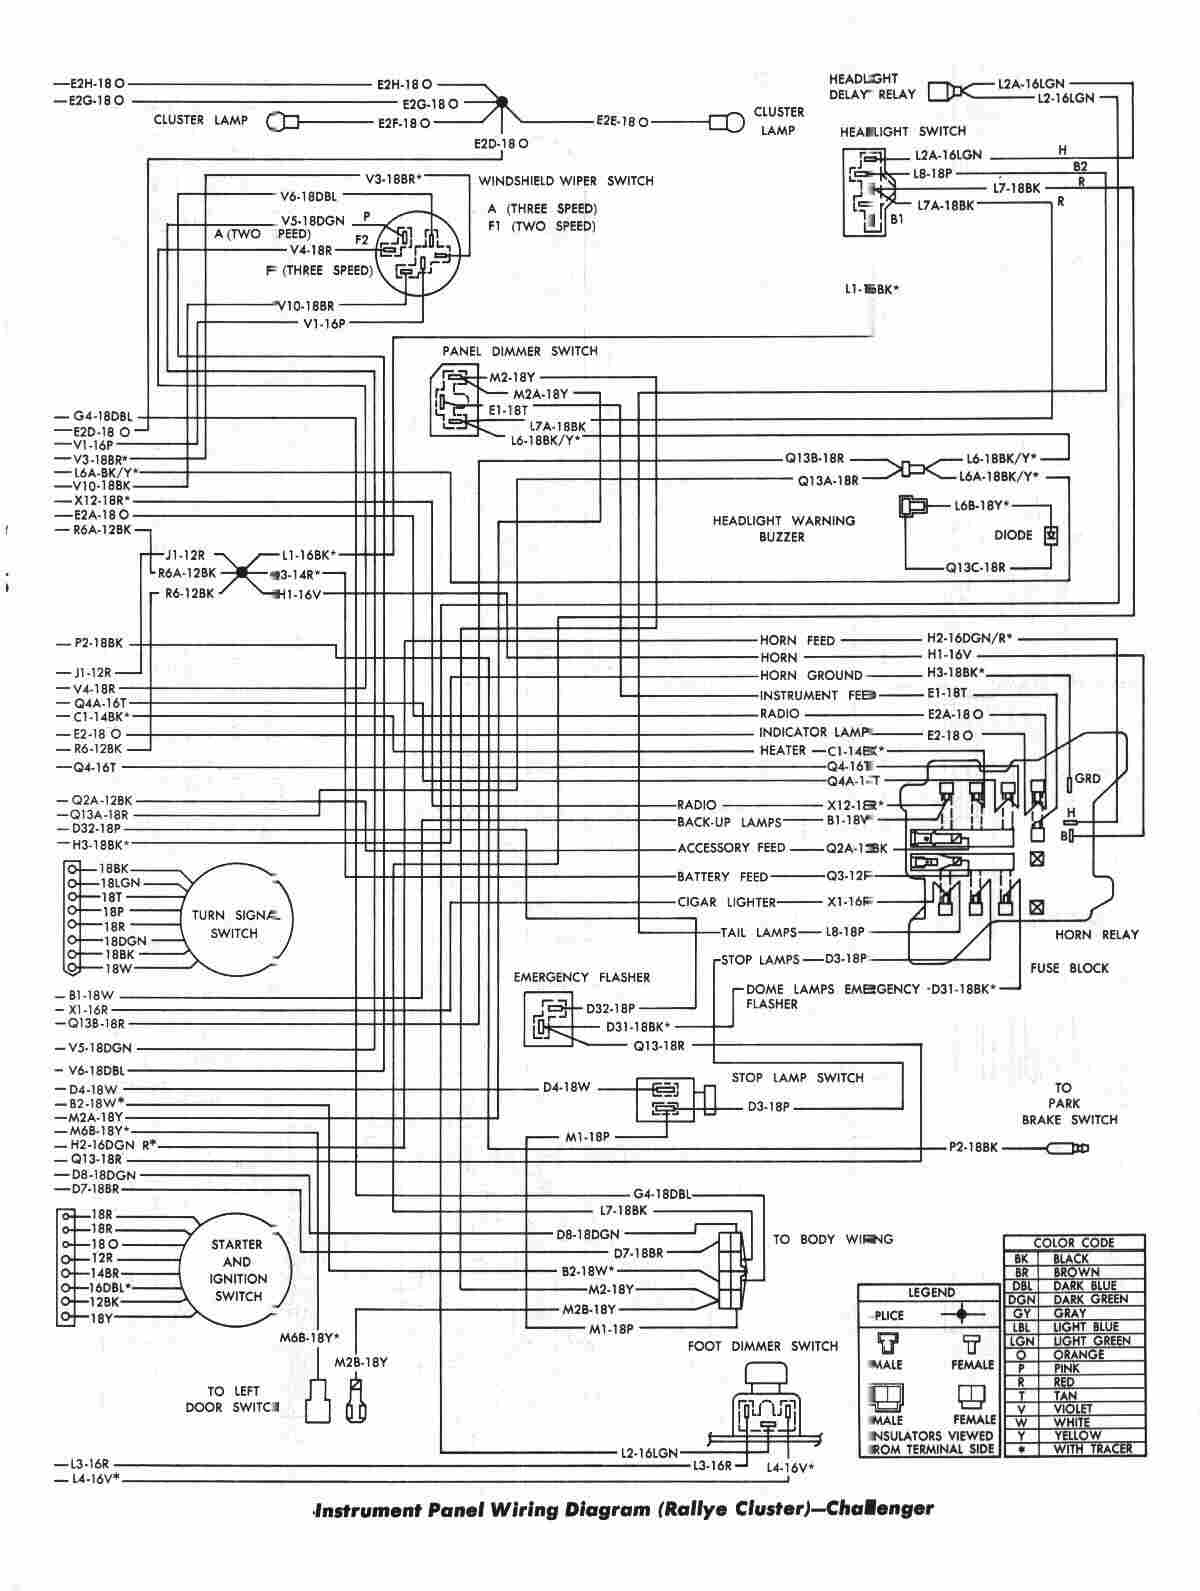 1970 dodge charger wiring harness 6 fut feba arbeitsvermittlung de \u202270 charger wiring diagram data wiring diagram rh 10 bty reginaundcaroline de dodge ram wiring harness